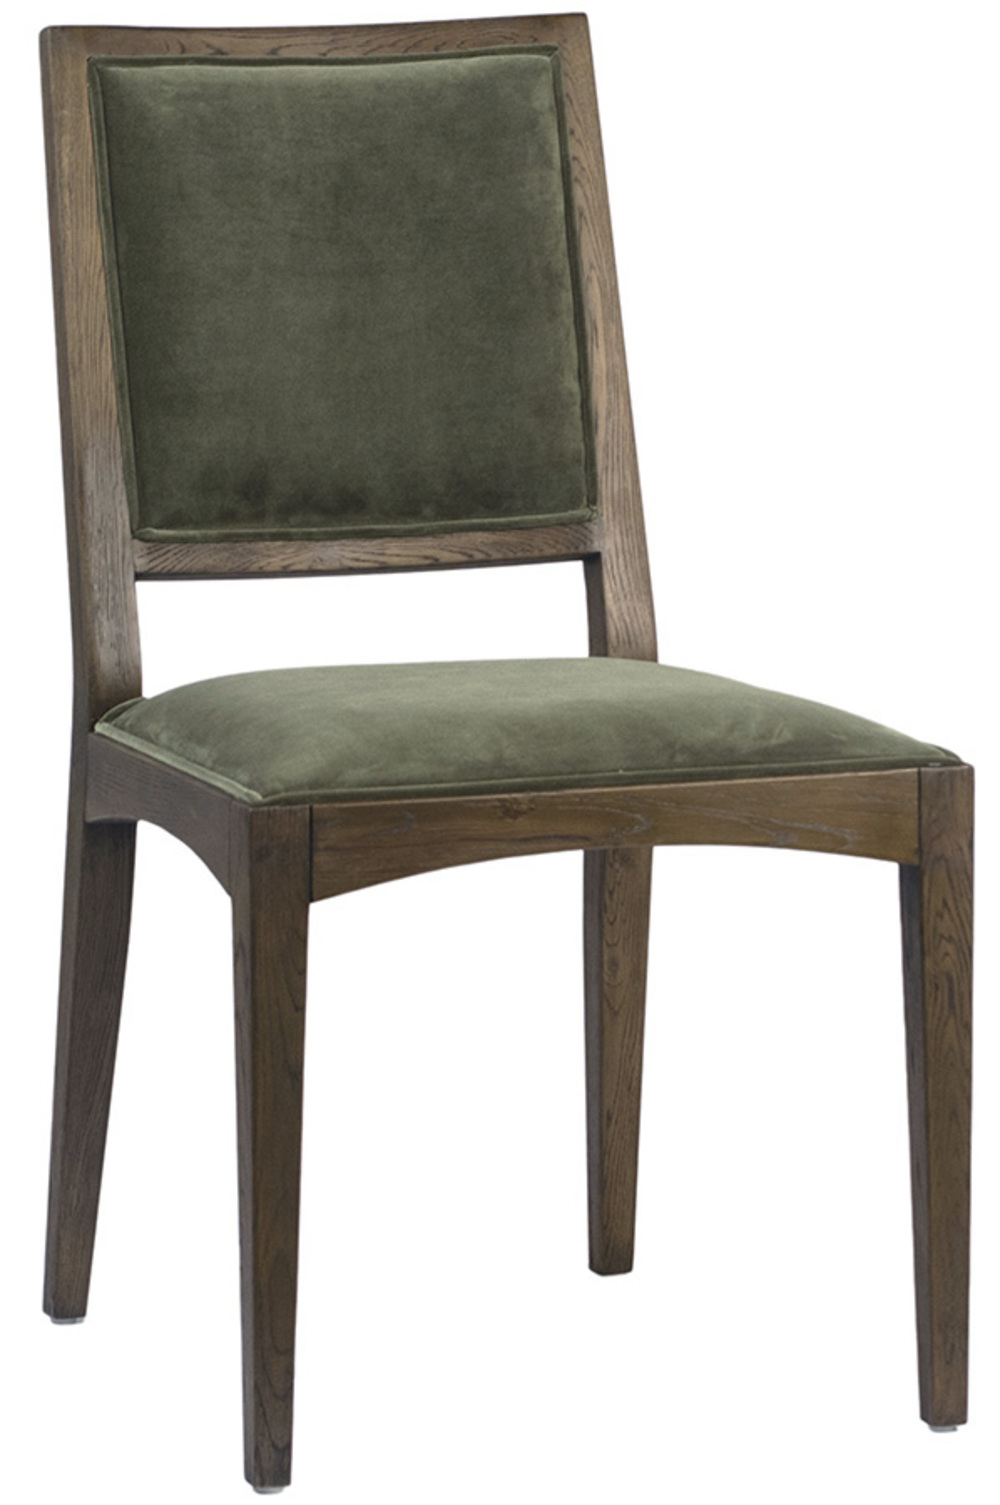 DOVETAIL FURNITURE - Hatfield Dining Chair